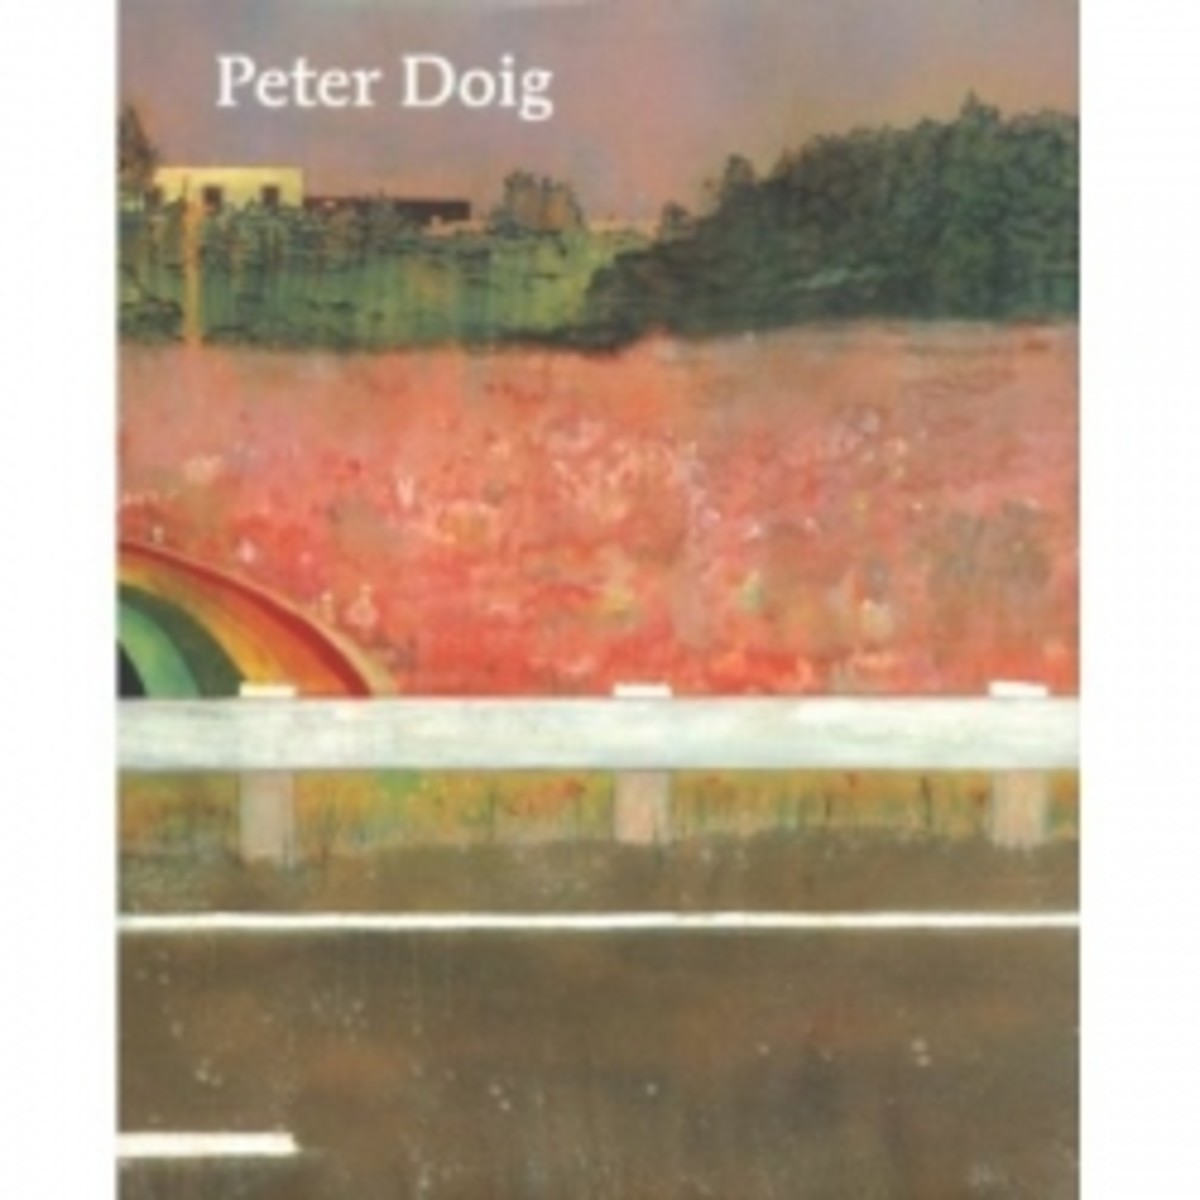 About Peter Doig - British Painter